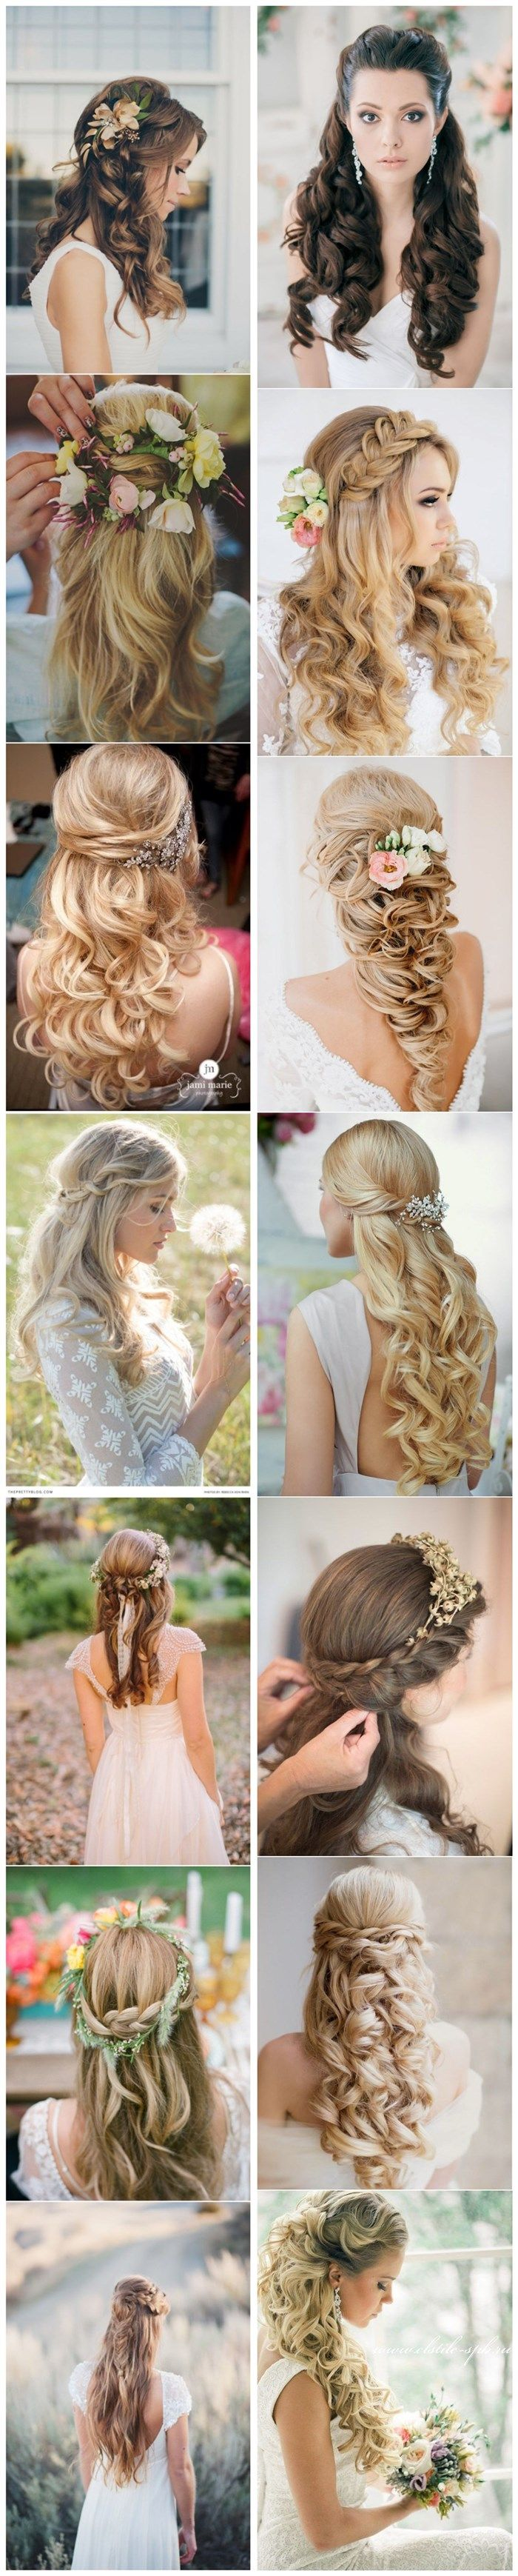 18 greek wedding hairstyles for the divine brides | wedding